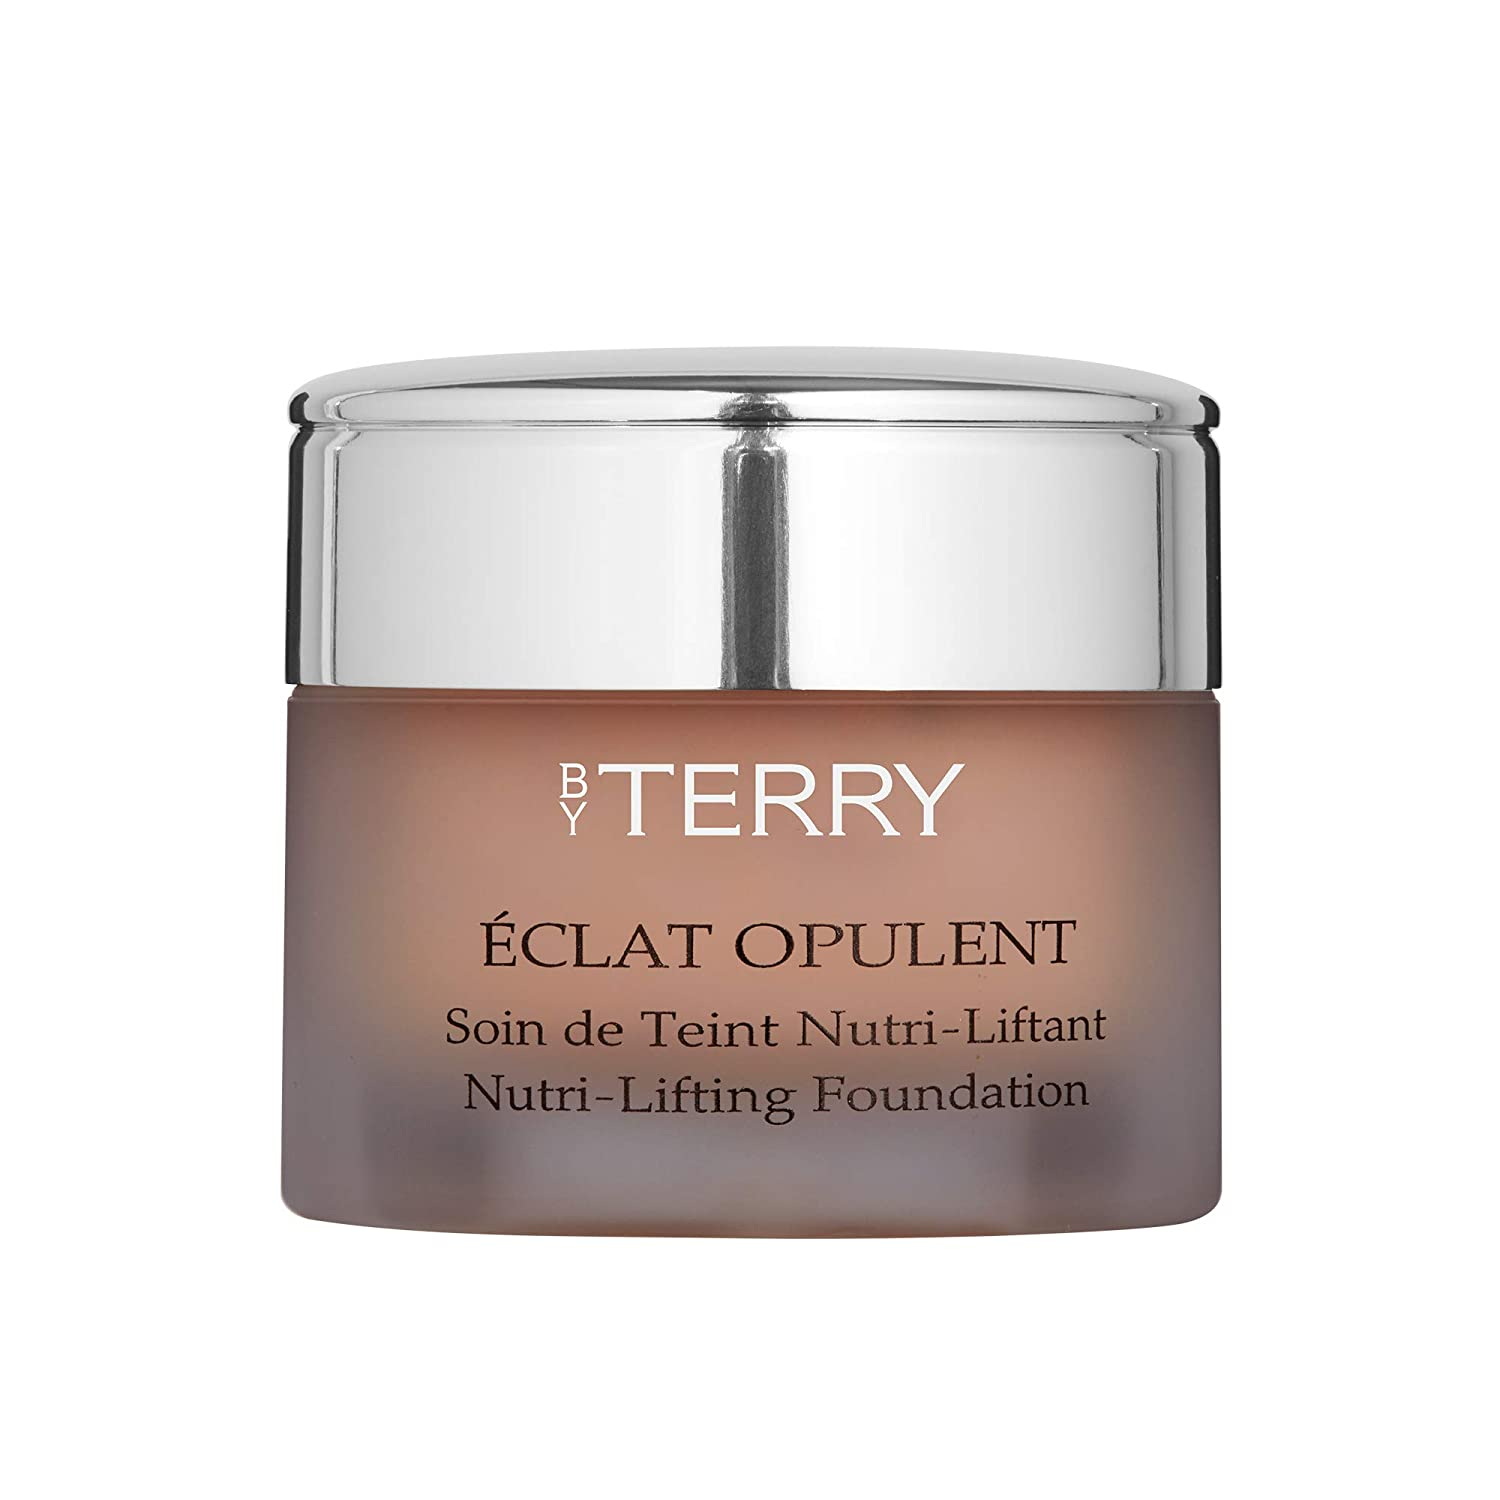 one of the best foundation for mature skin